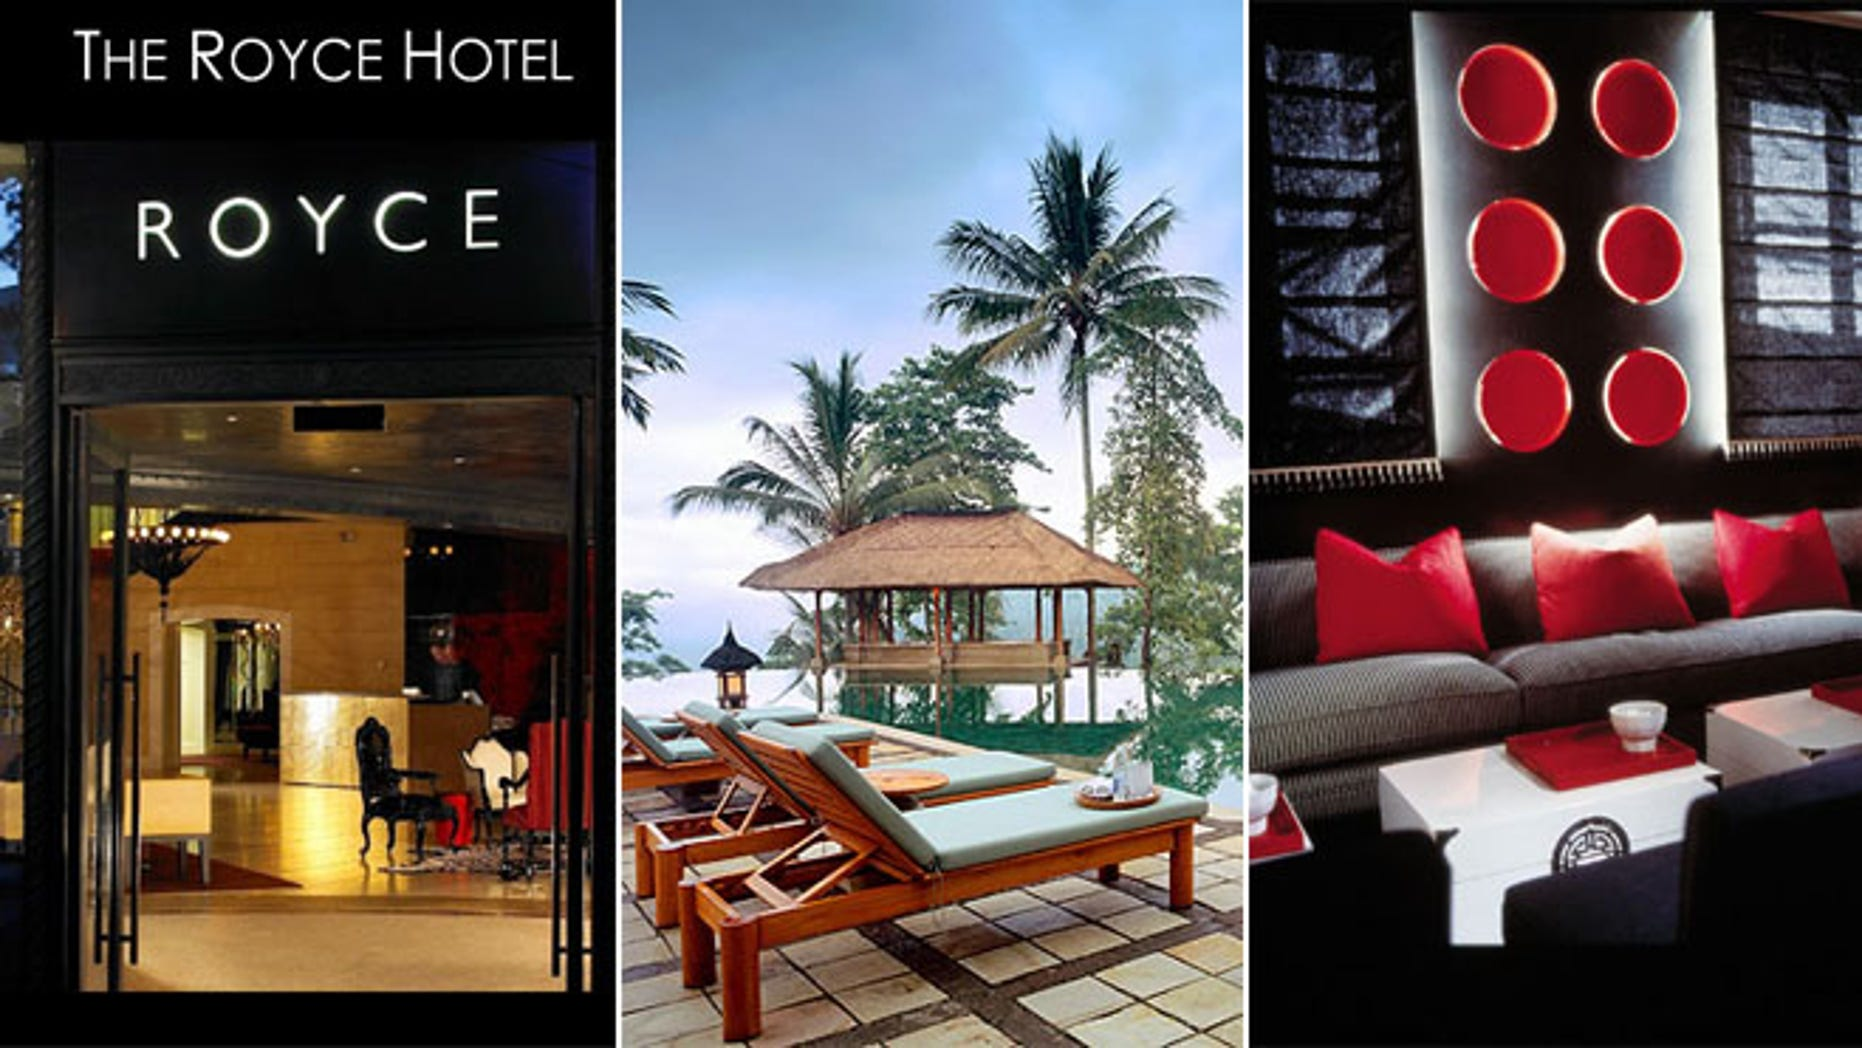 Maison 140 in Beverly Hills, Calif., Amandari in Bali and the Royce Hotel in Melbourne.